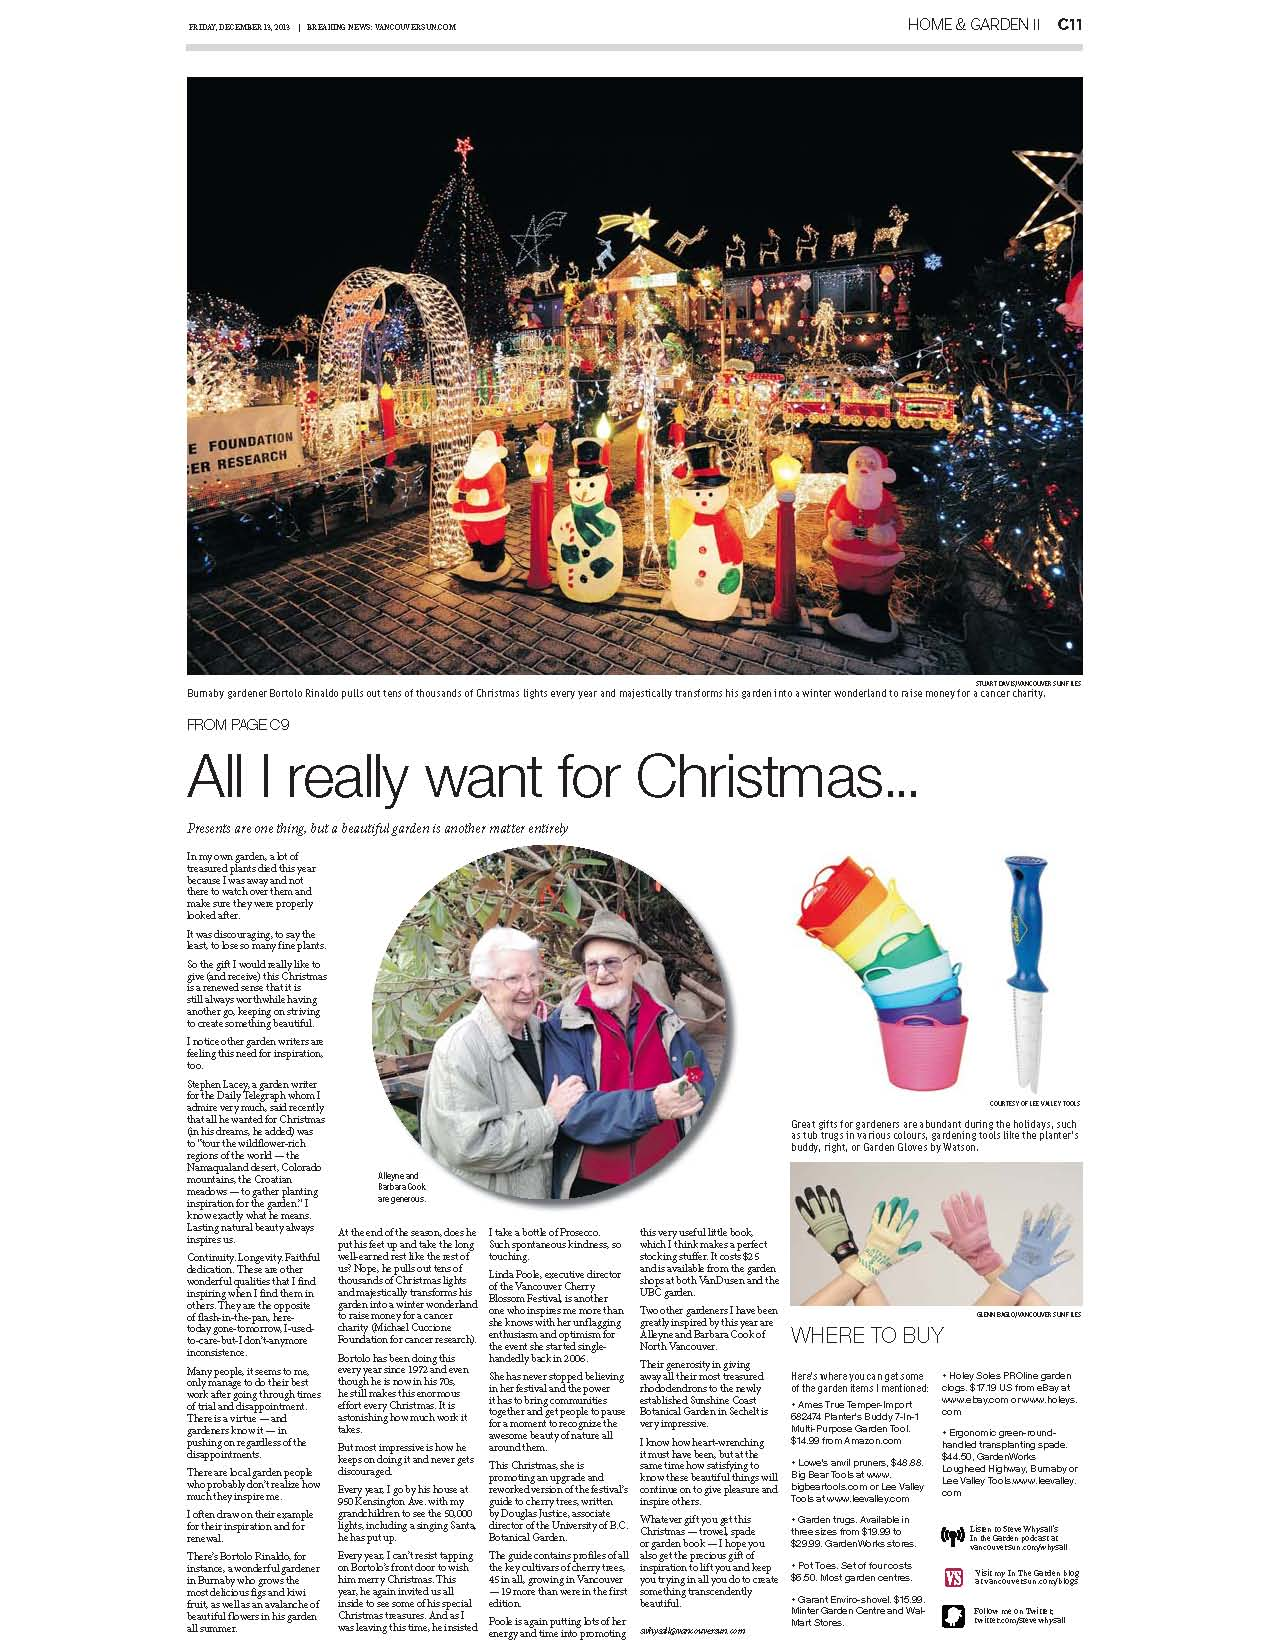 Vancouver Sun - All I want for Christmas (Print): Dec. 13, 2013